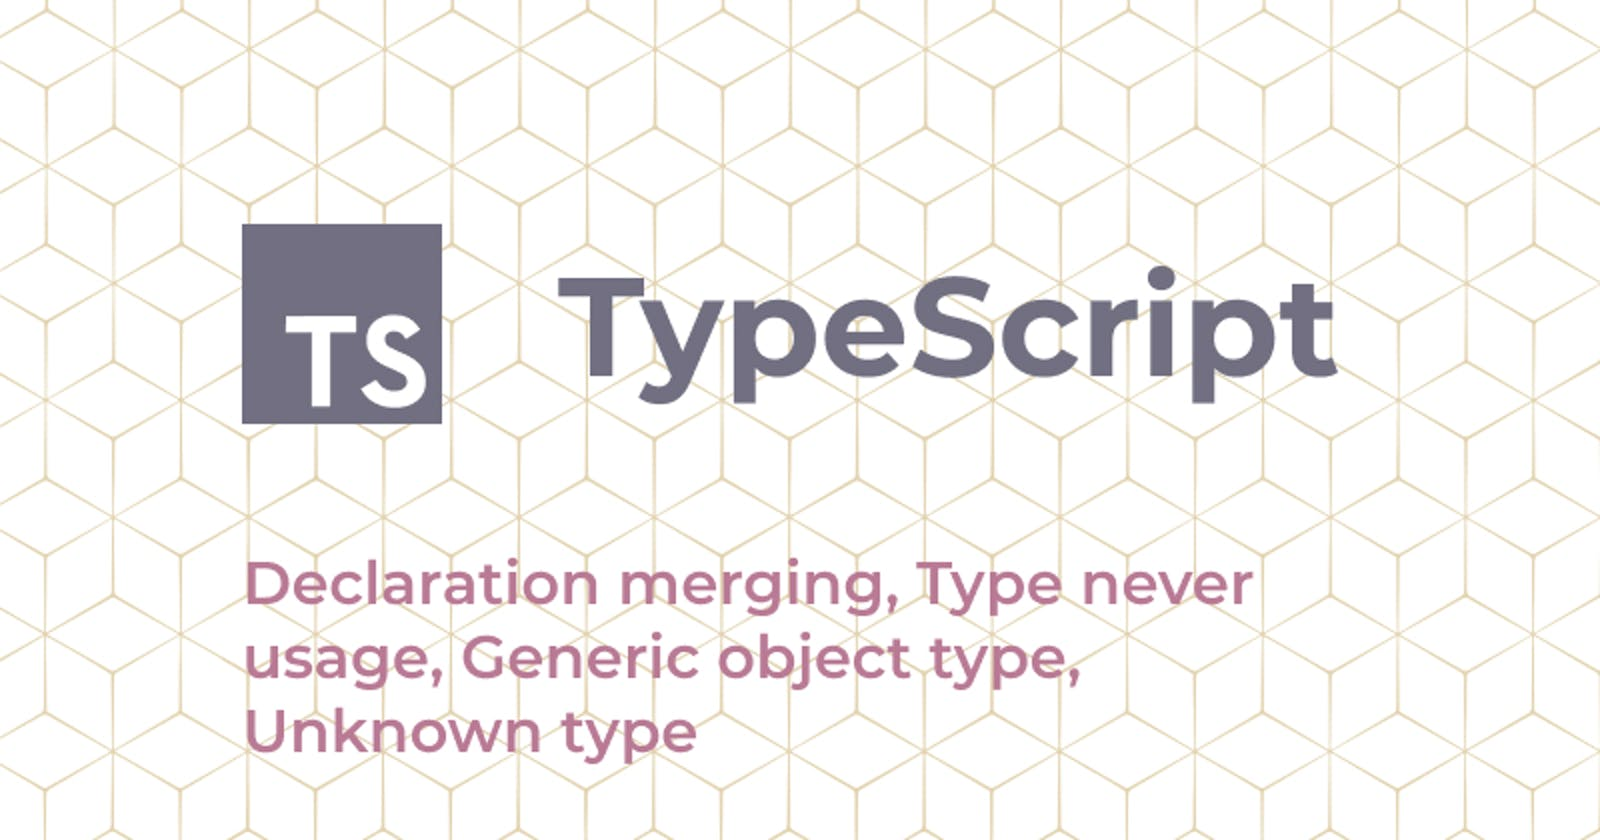 TypeScript: Declaration merging, Type never usage, Generic object type, Unknown type